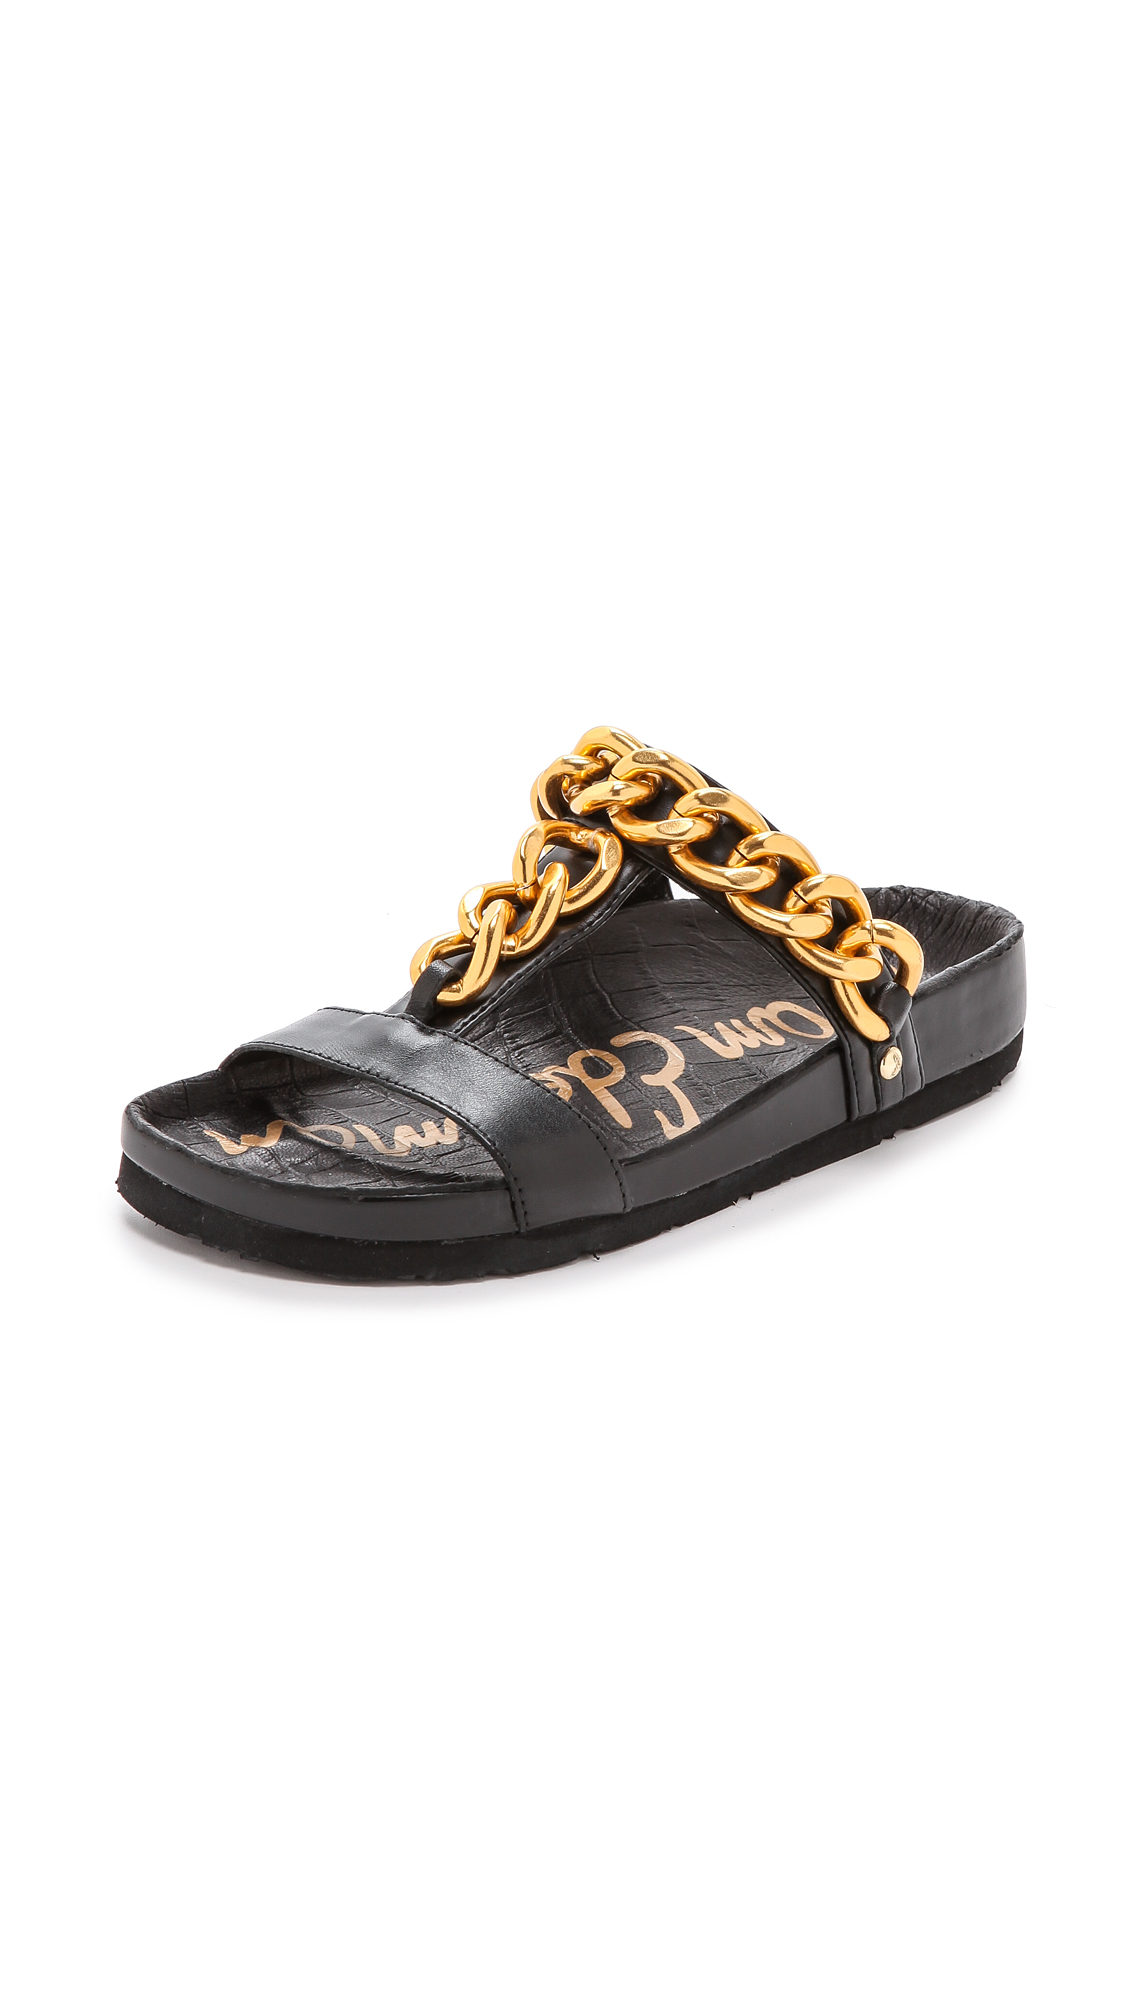 11664cca5b23 Cute summer sandals that won t hurt your feet - AOL Lifestyle